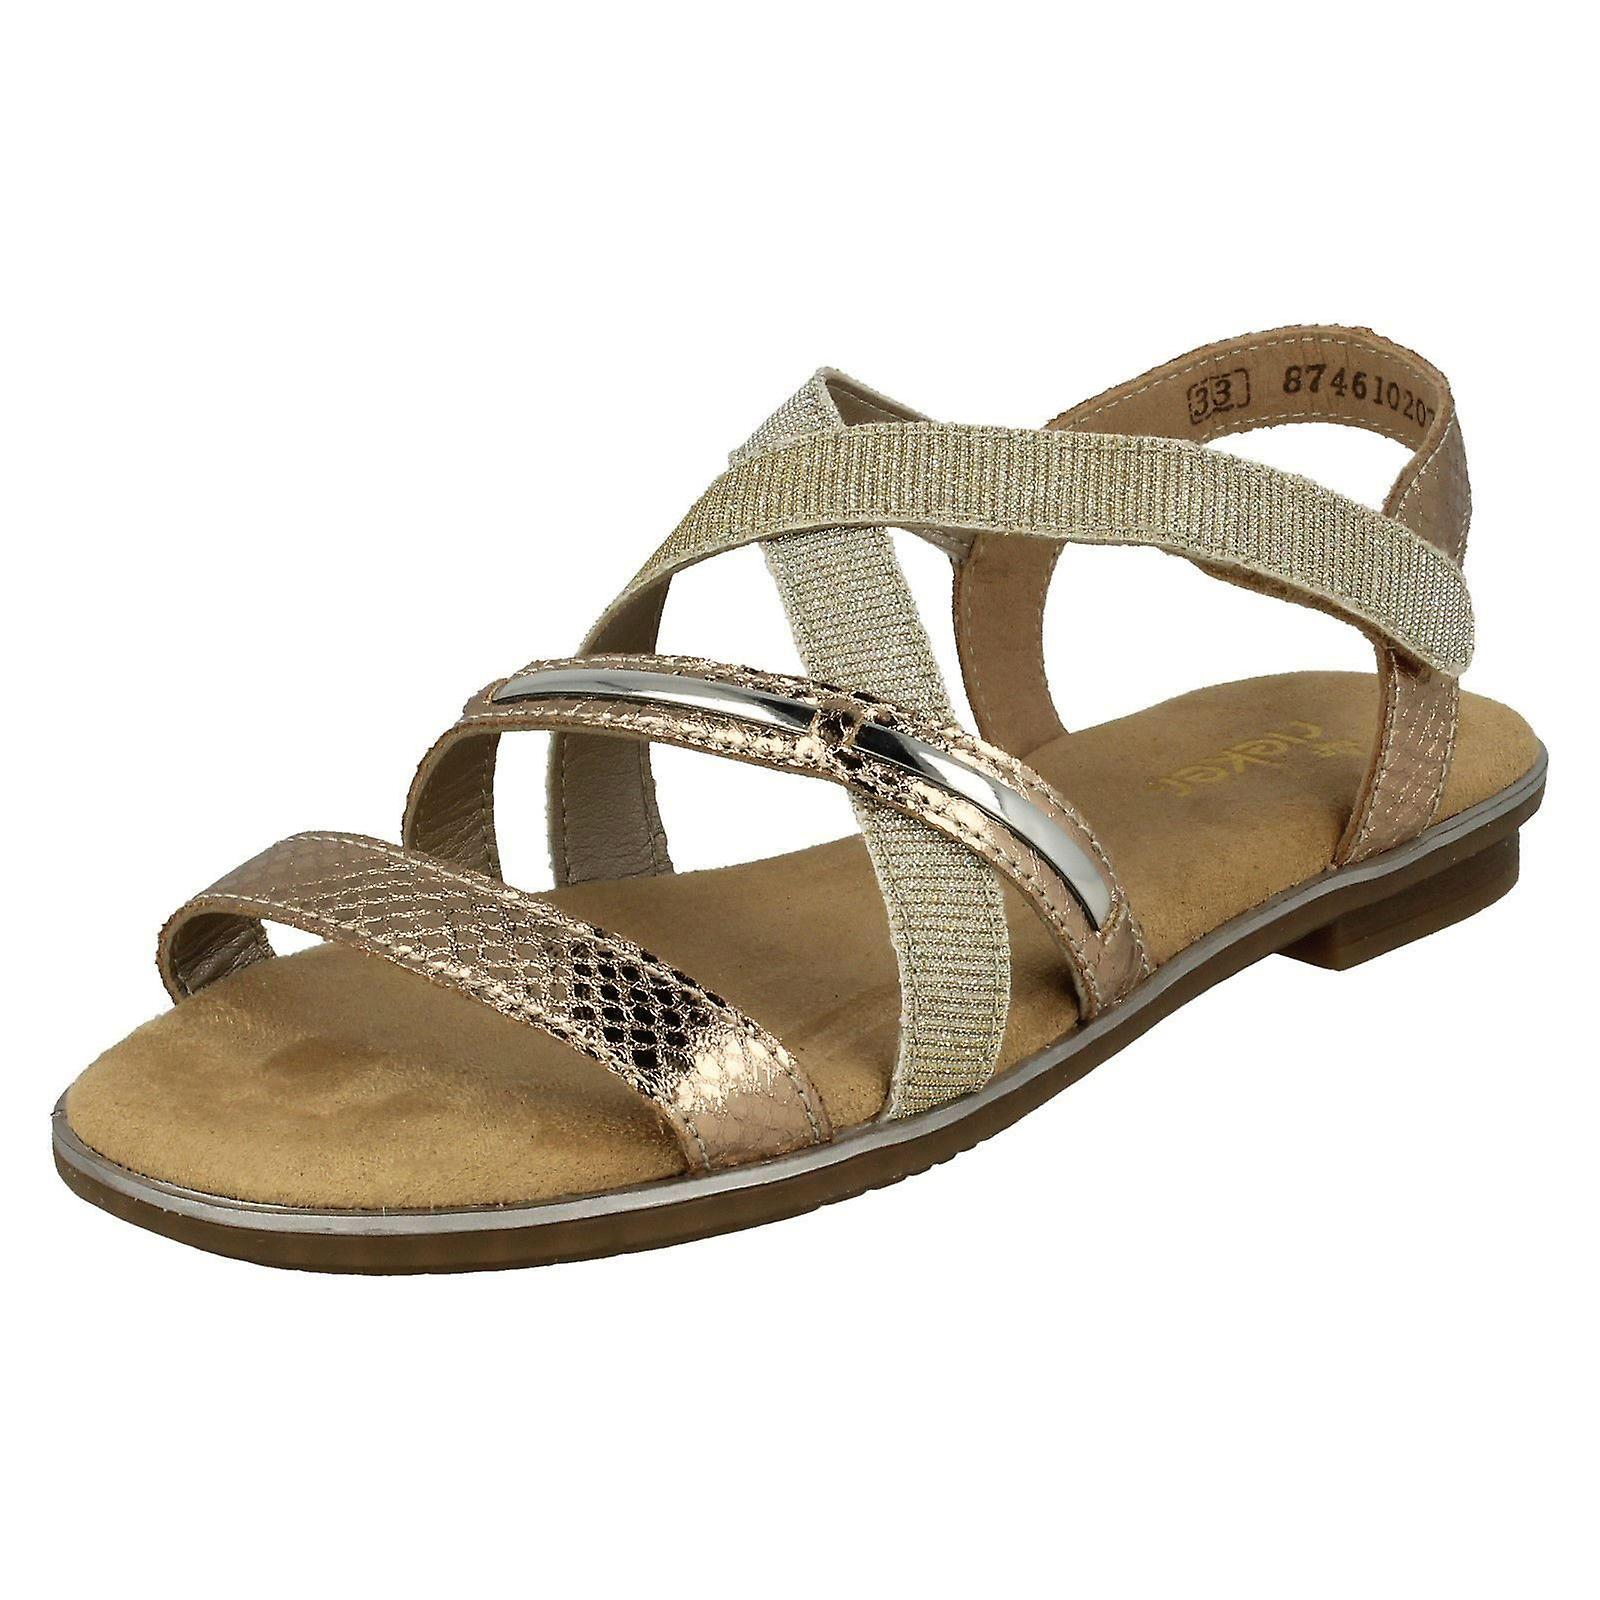 Girls Rieker Casual Strappy Sandals K0850 31 Rosa Synthetic UK Size 2.5 EU Size 35 US Size 3.5